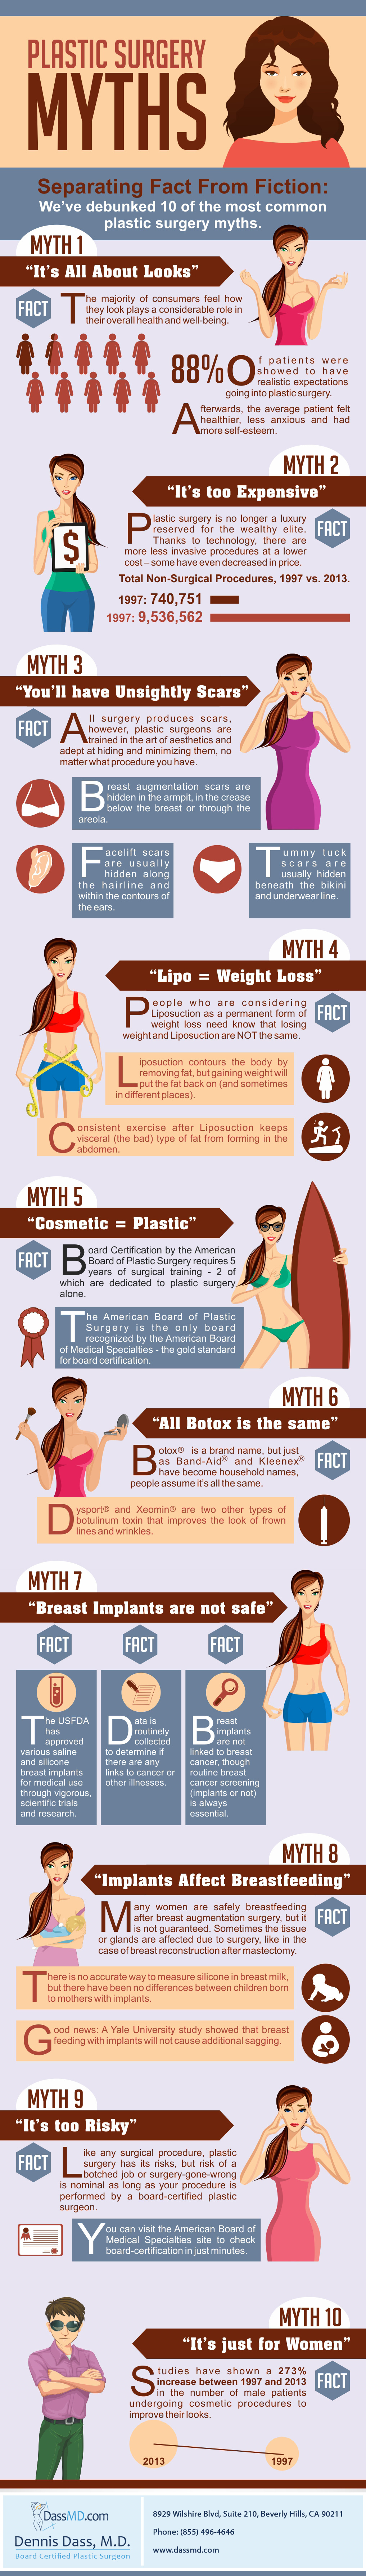 Myth Busting: What You Should Know About Plastic Surgery